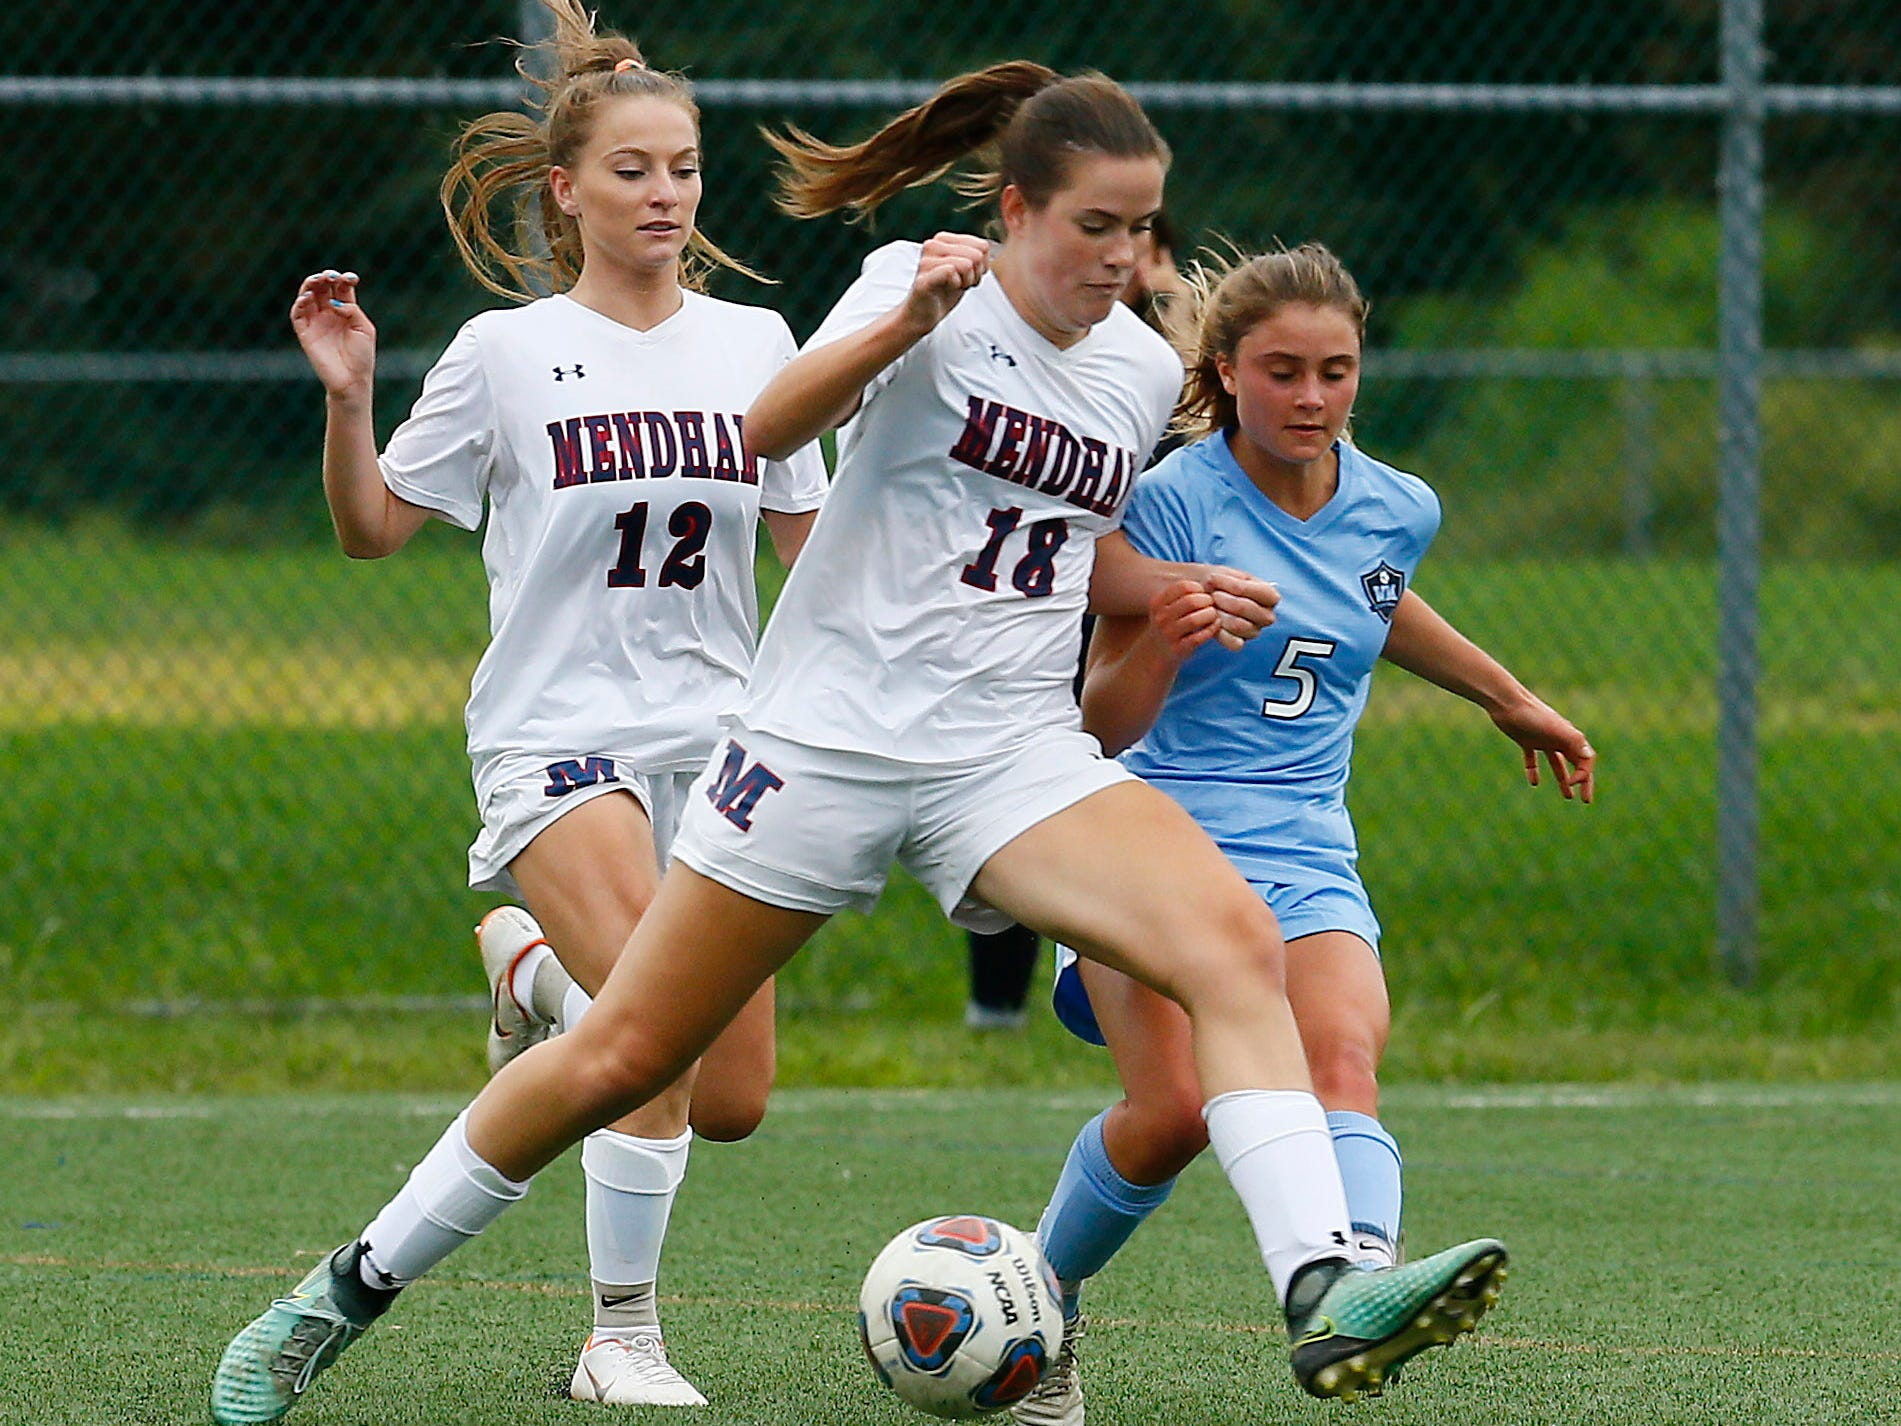 Mendham's Michelle Fanelli controls the ball vs. West Morris during their NJAC-American girls soccer match. September 19, 2018, Mt Olive, NJ